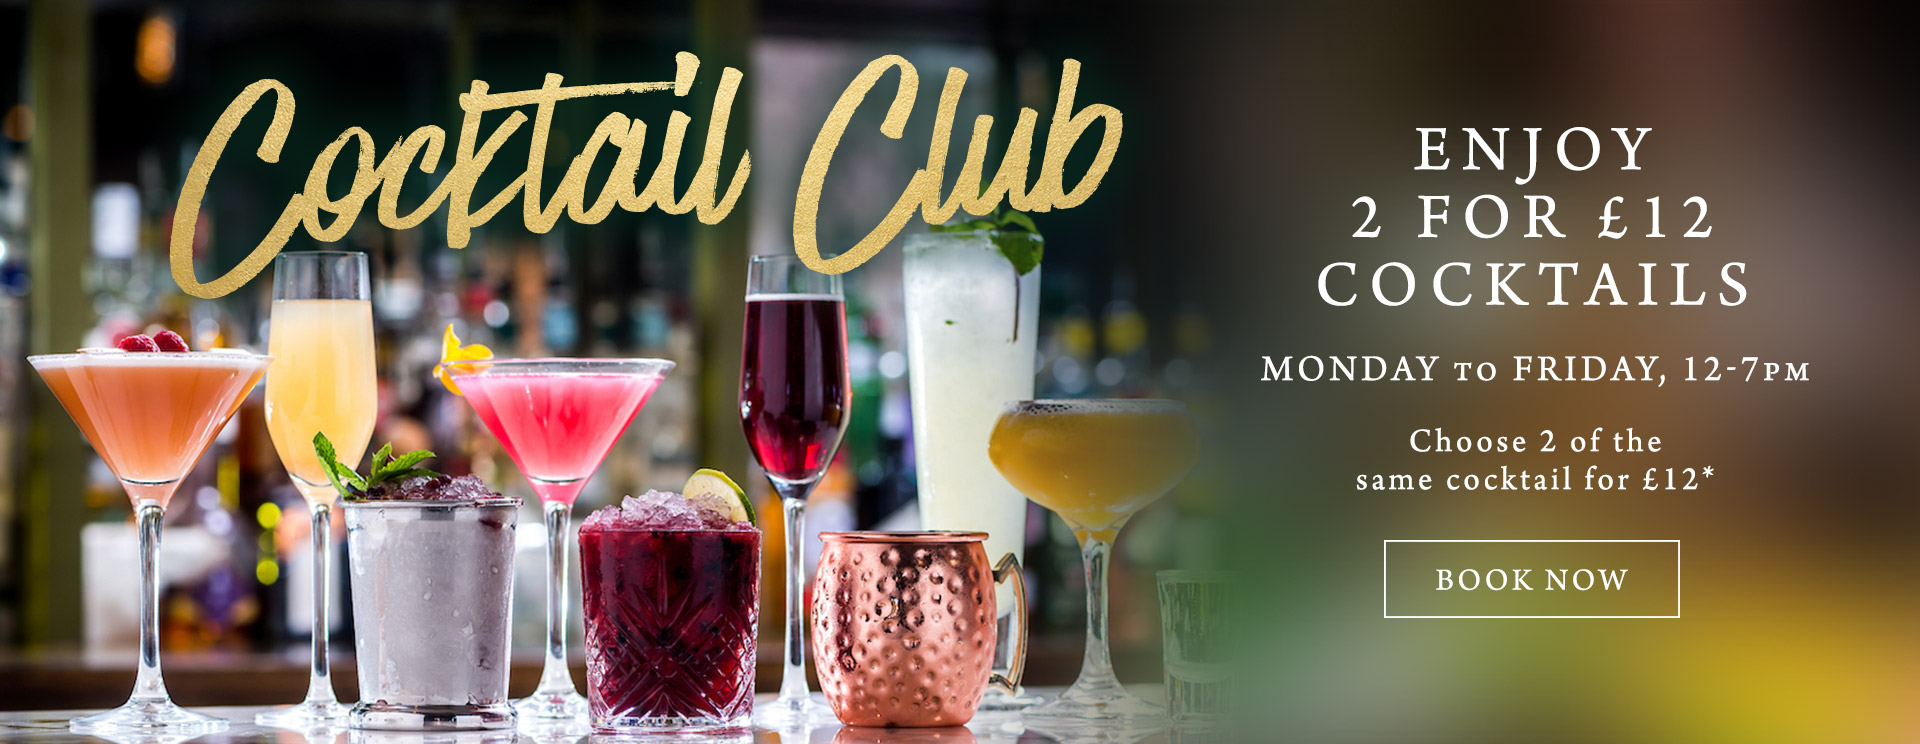 2 for £12 cocktails at The Crown